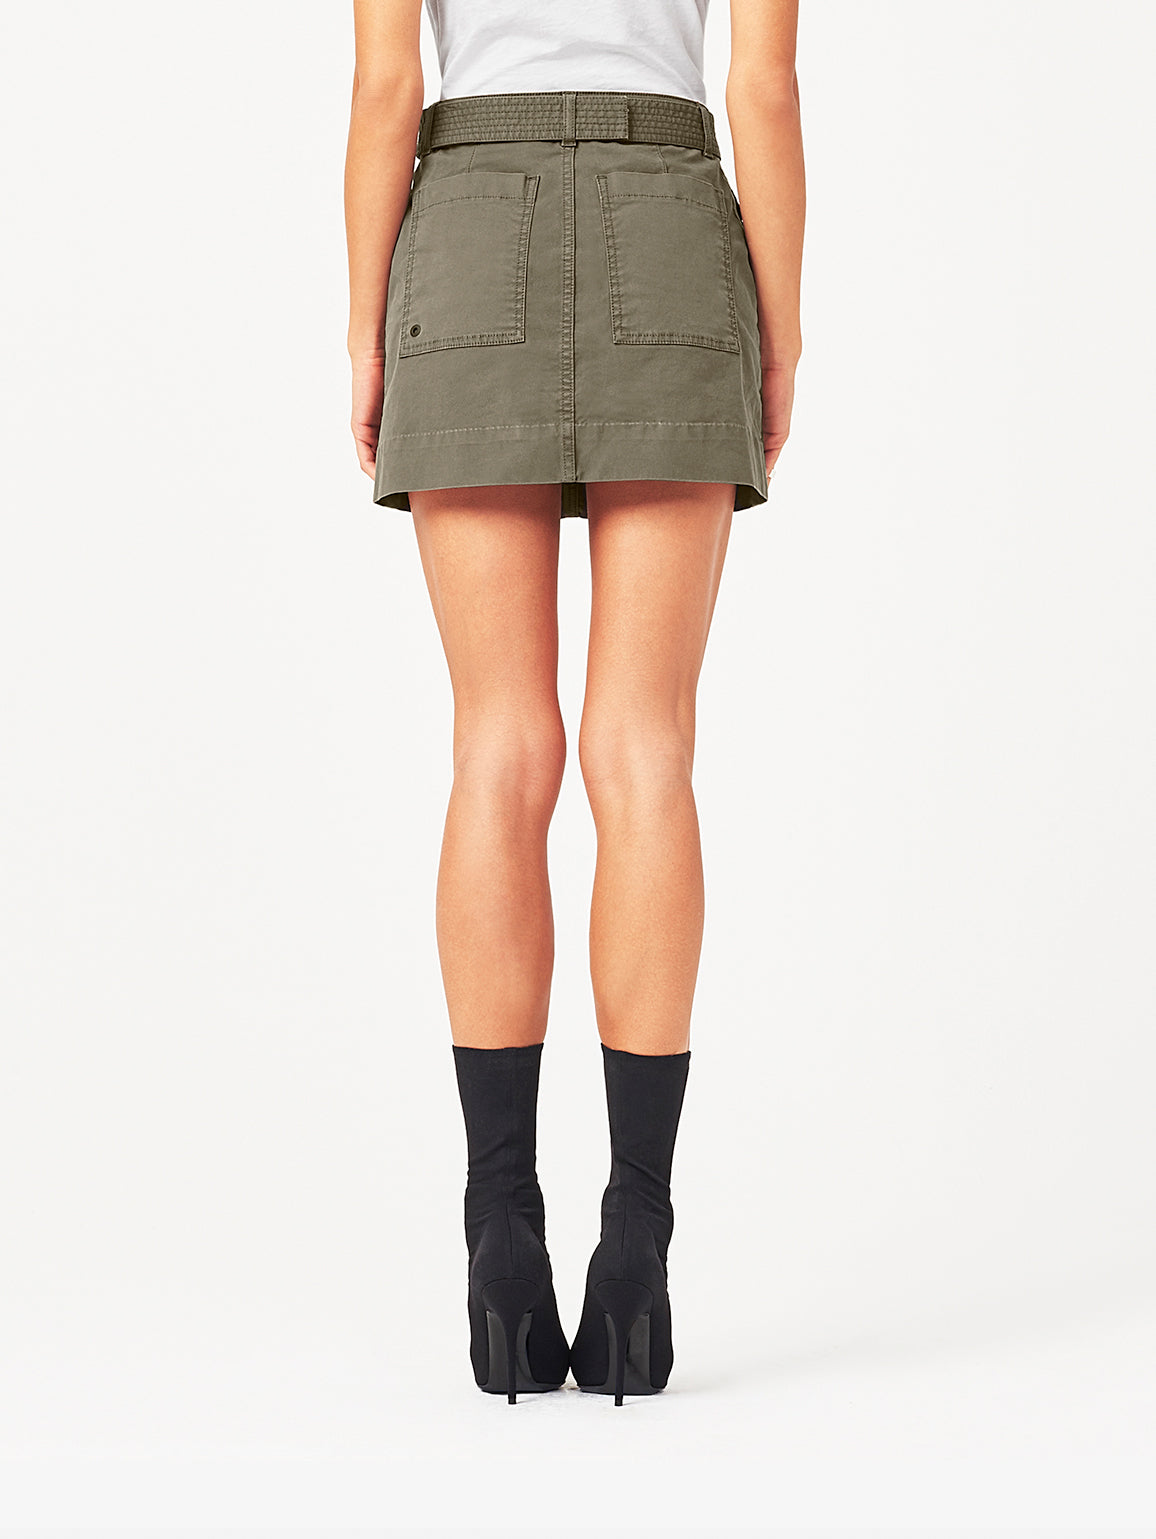 Parker High Rise Mini Skirt | Driftless DL 1961 Denim